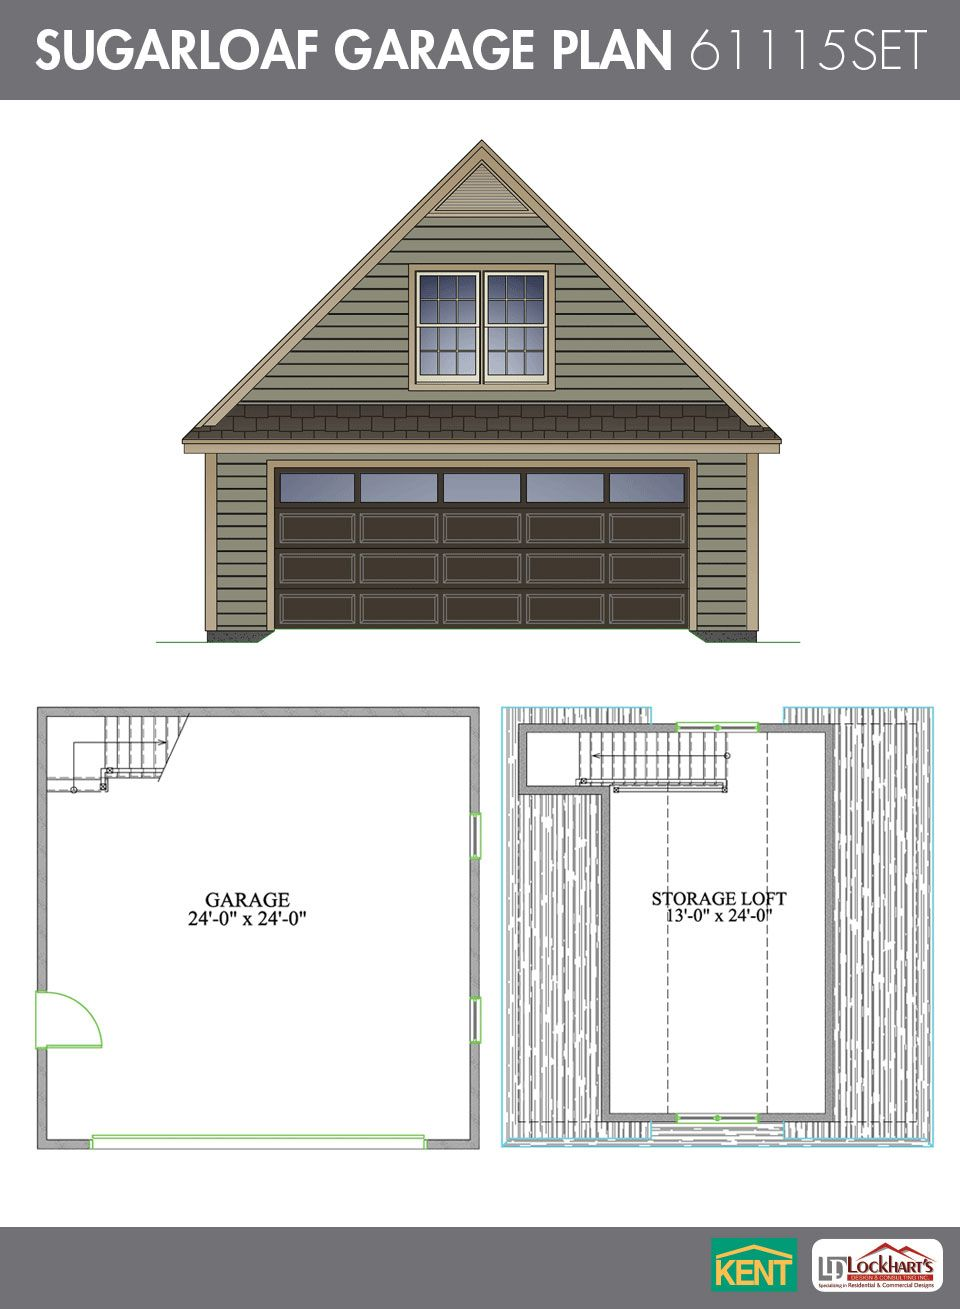 Sugarloaf Garage Plan Kent Building Supplies Garage Plans Detached Garage Plans With Loft Garage Plans